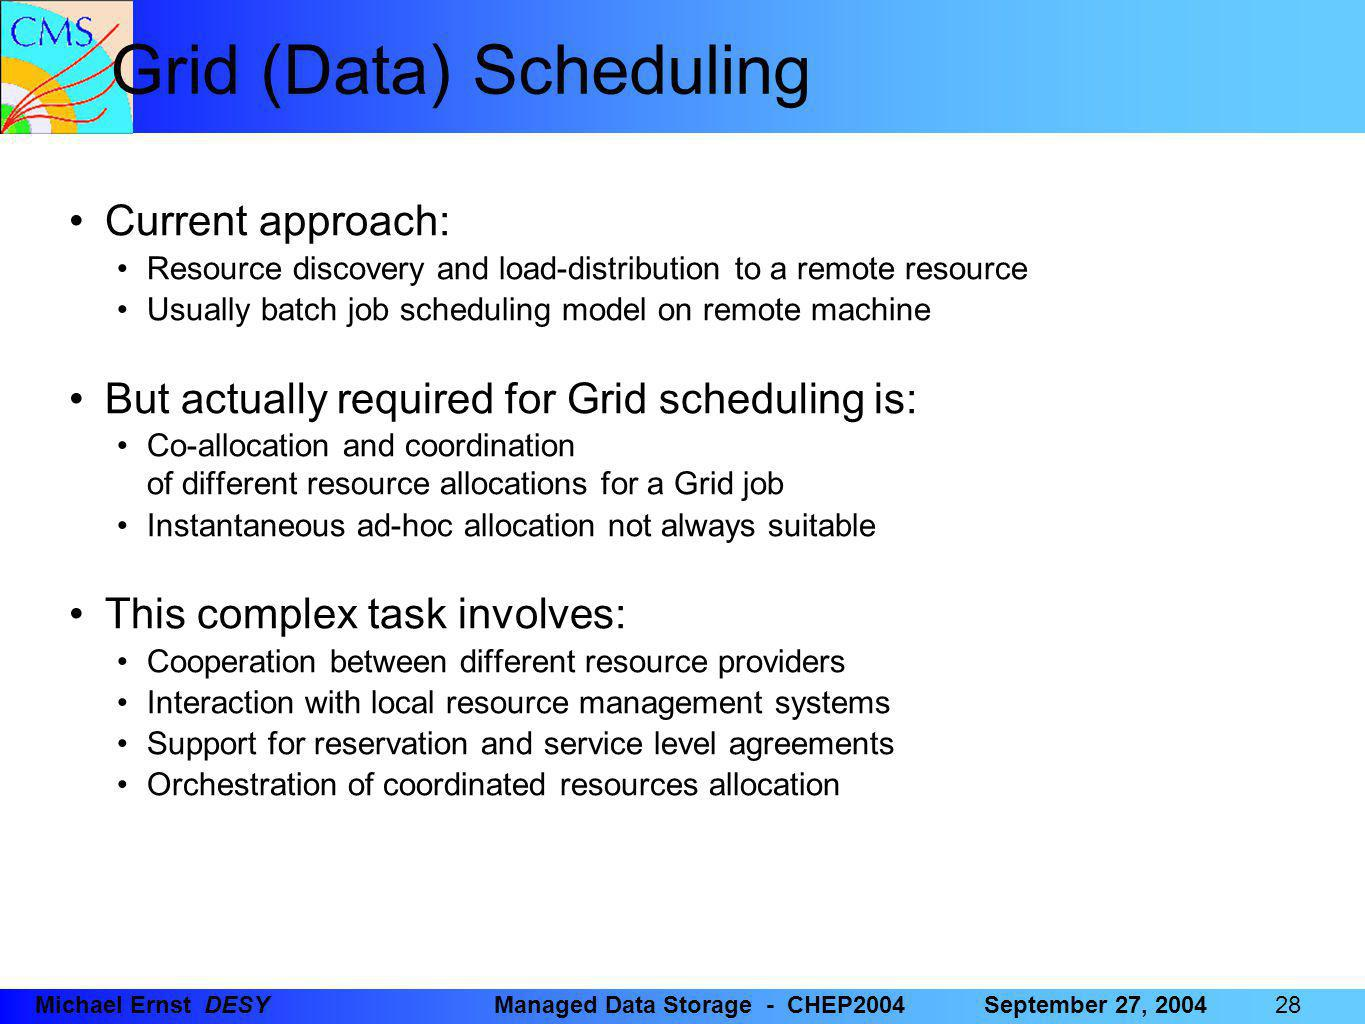 28 Michael Ernst DESYManaged Data Storage - CHEP2004September 27, 2004 Grid (Data) Scheduling Current approach: Resource discovery and load-distribution to a remote resource Usually batch job scheduling model on remote machine But actually required for Grid scheduling is: Co-allocation and coordination of different resource allocations for a Grid job Instantaneous ad-hoc allocation not always suitable This complex task involves: Cooperation between different resource providers Interaction with local resource management systems Support for reservation and service level agreements Orchestration of coordinated resources allocation